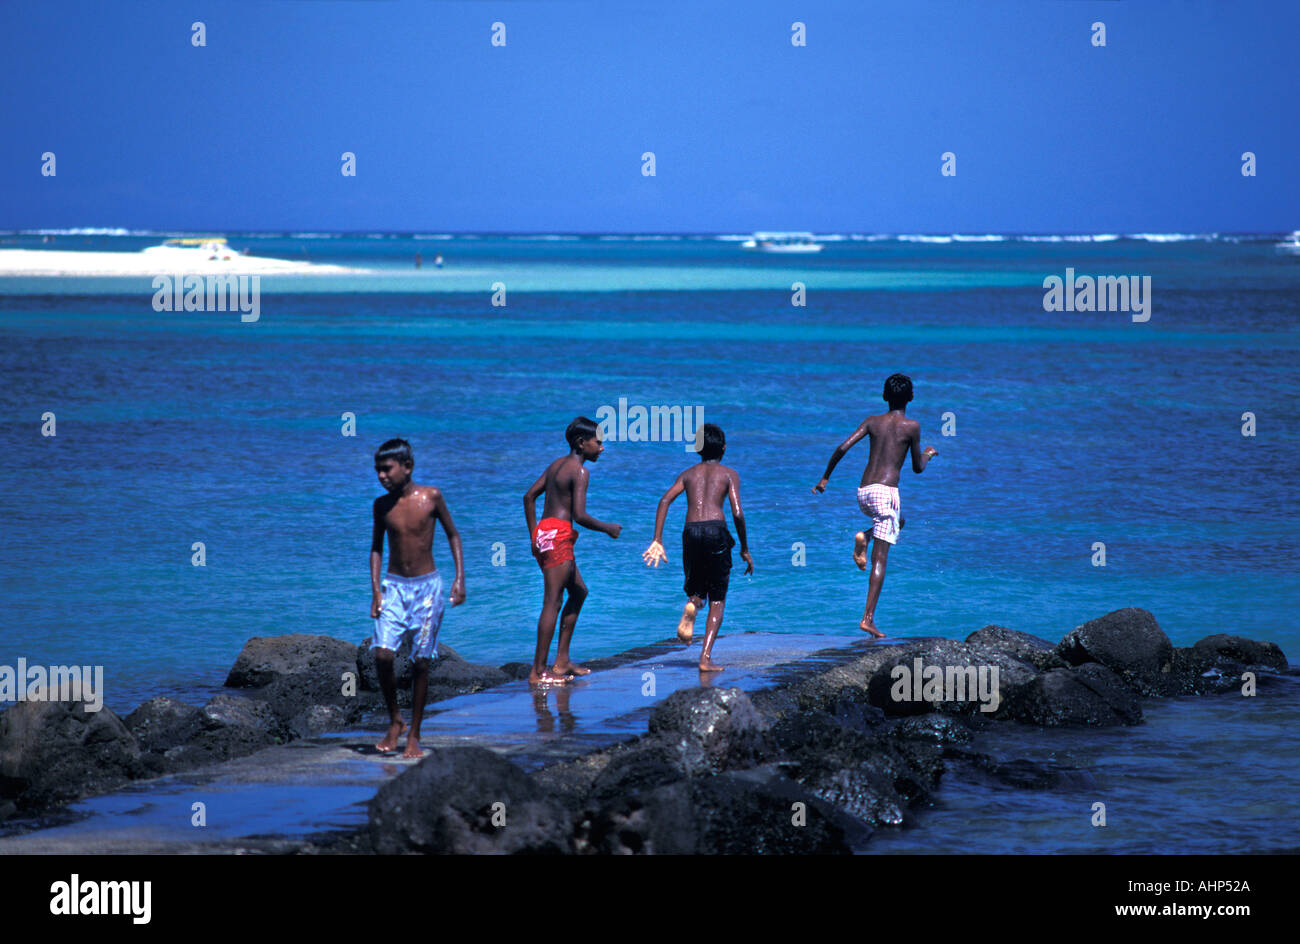 Kids running and jumping off a jetty into the sea off the coast of Mauritius Indian Ocean - Stock Image